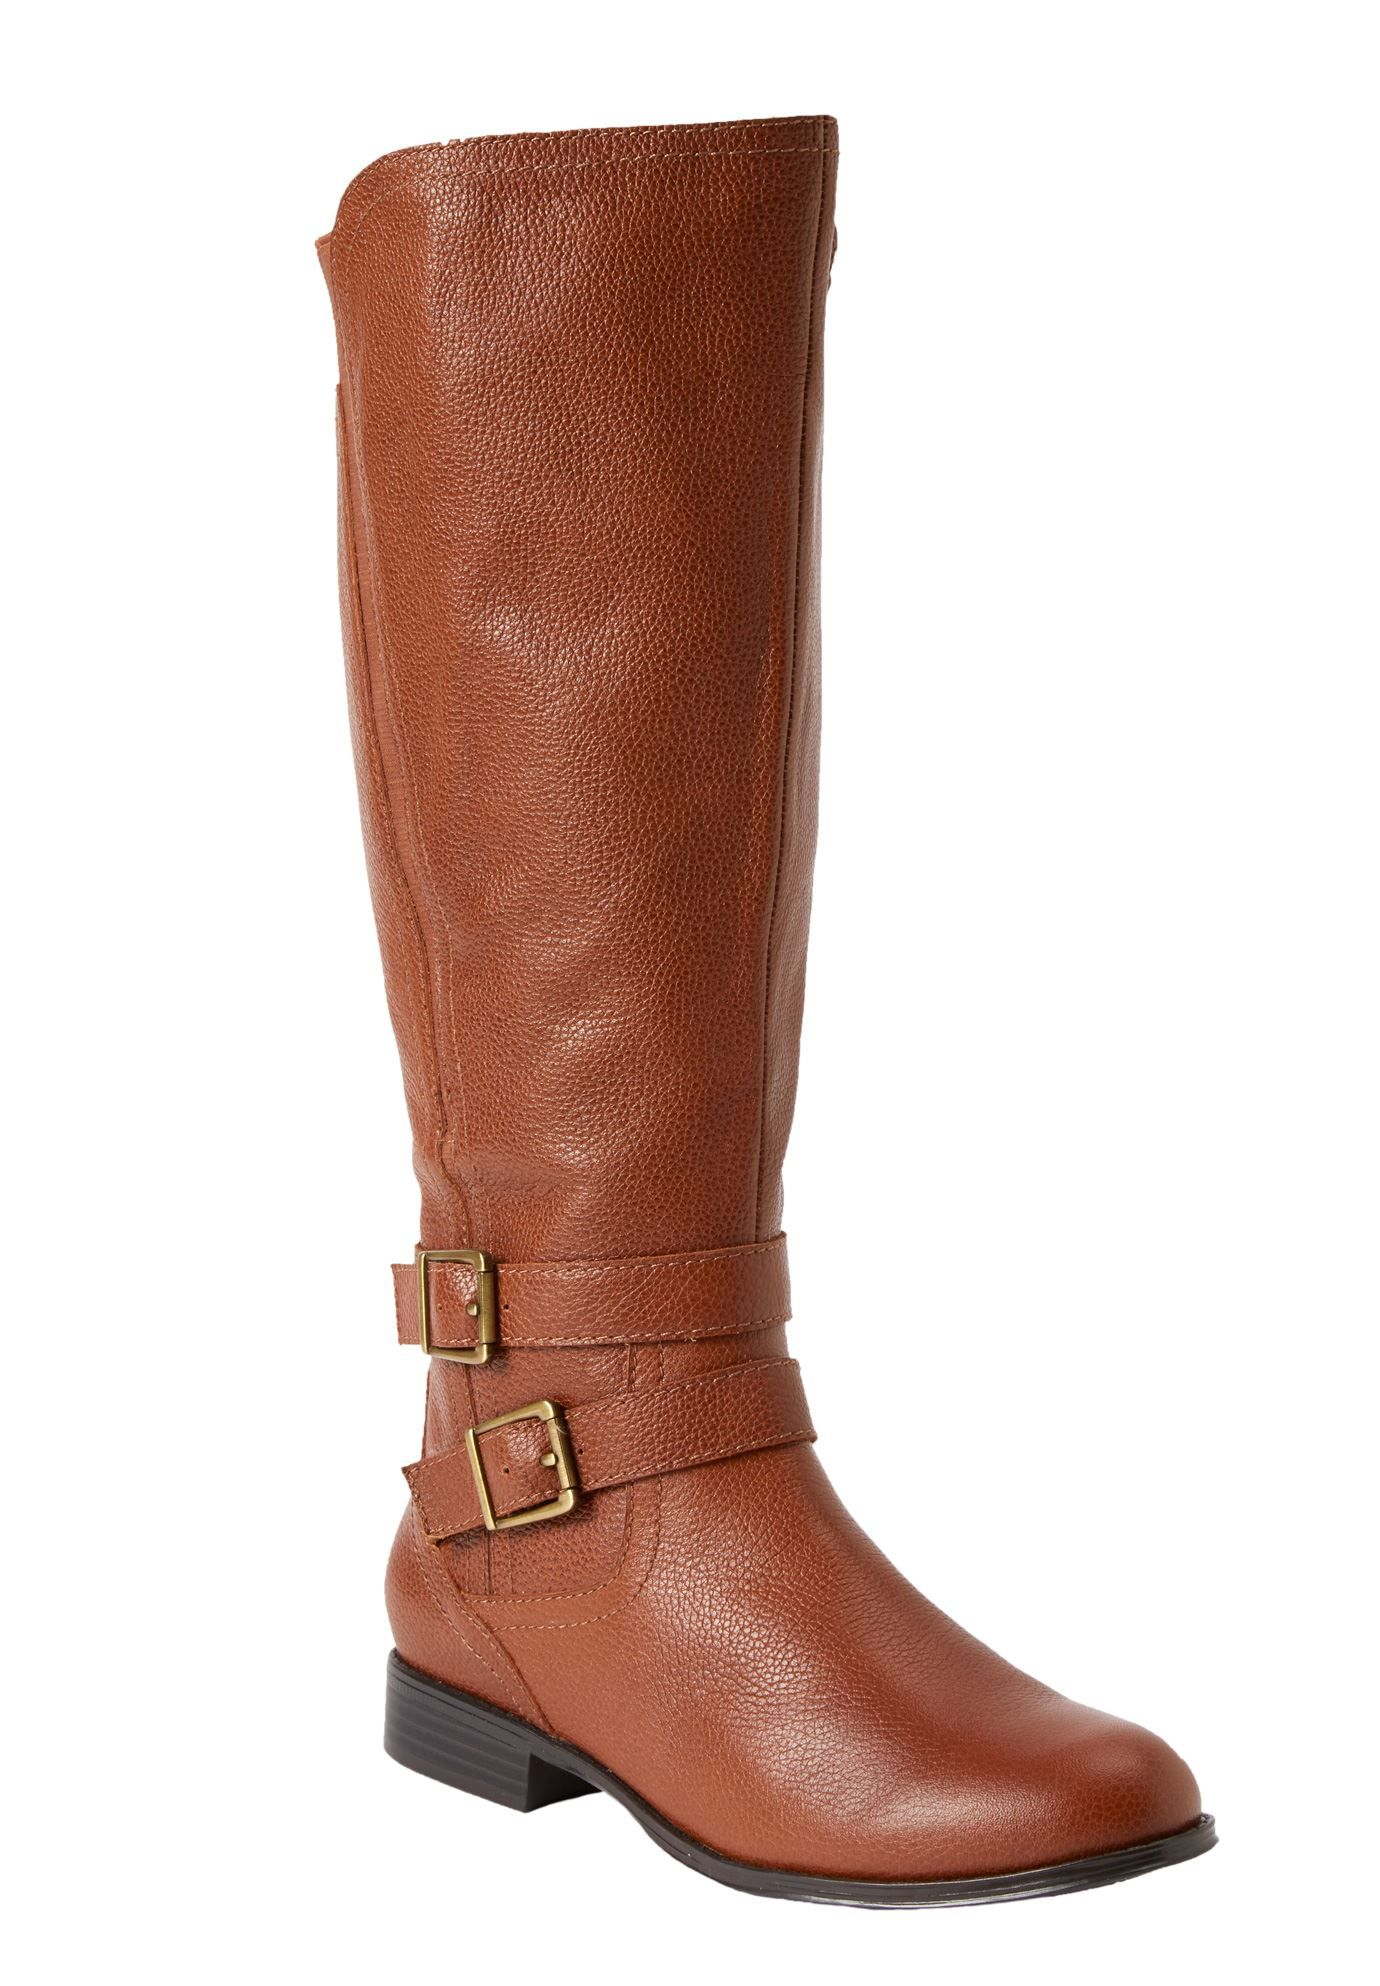 b283fe95027 Plus Size Gem Tall Leather Wide Calf Boots 11w 17-19